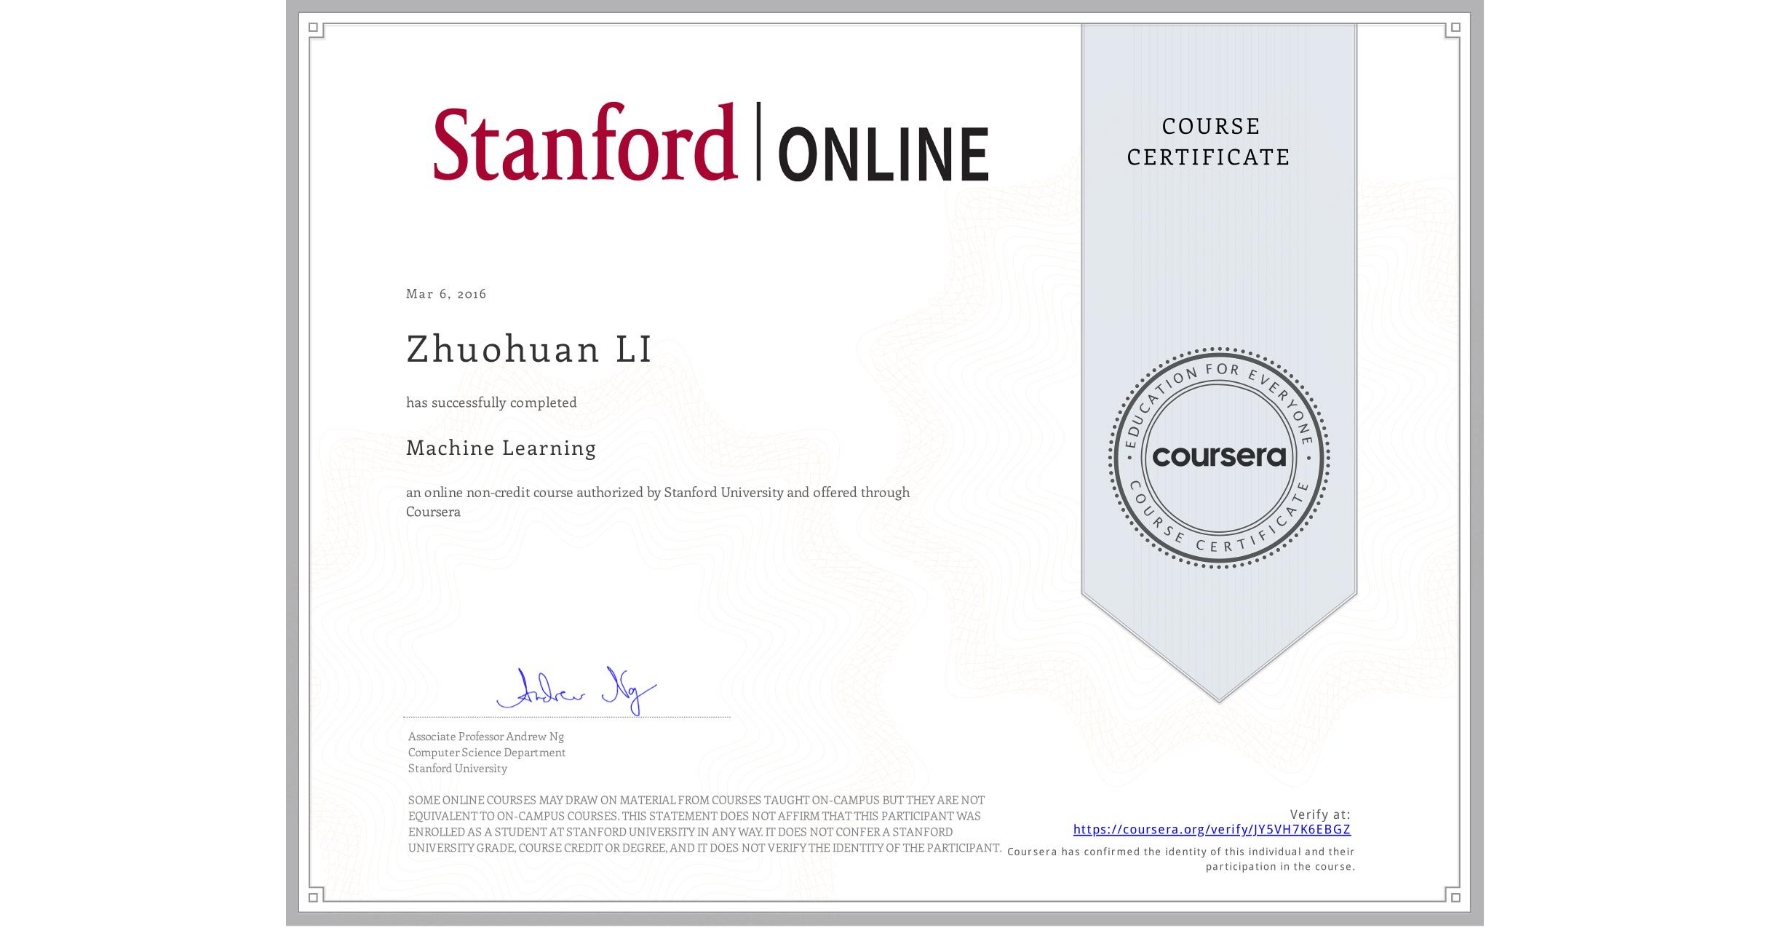 View certificate for Zhuohuan LI, Machine Learning, an online non-credit course authorized by Stanford University and offered through Coursera